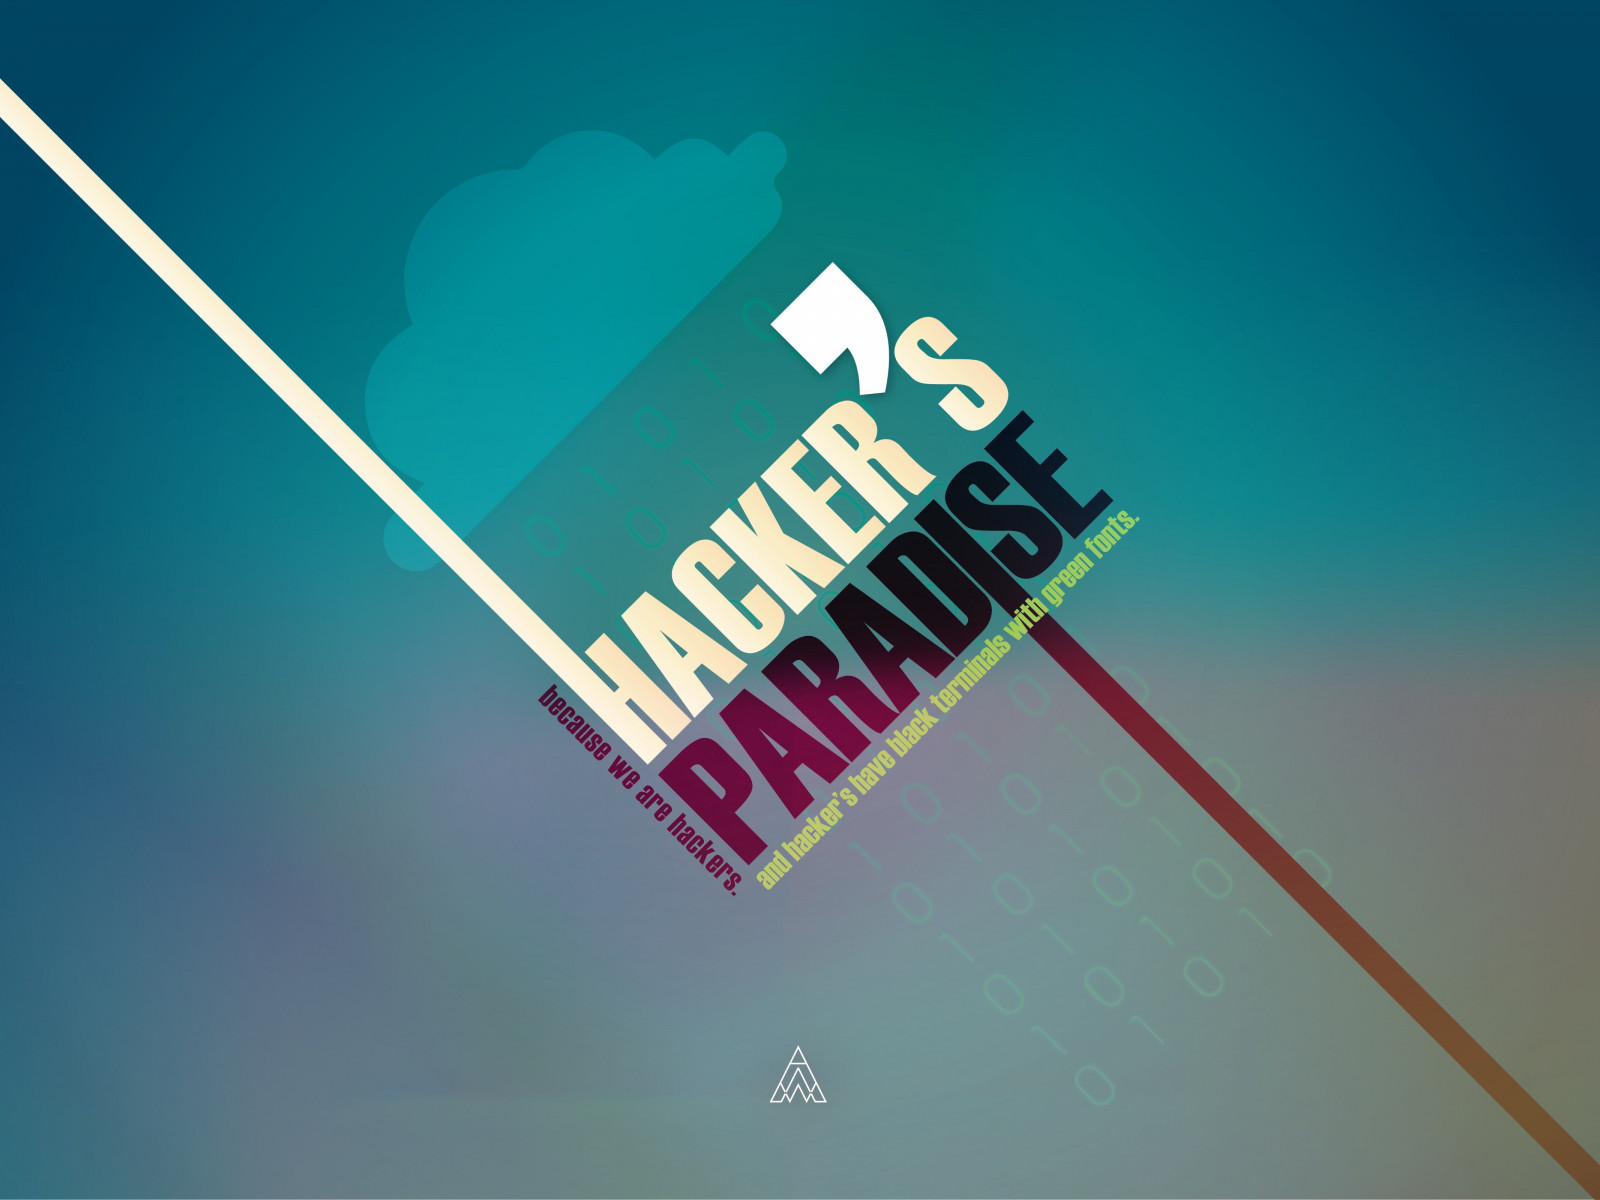 Hacker's Paradise wallpaper 1600x1200